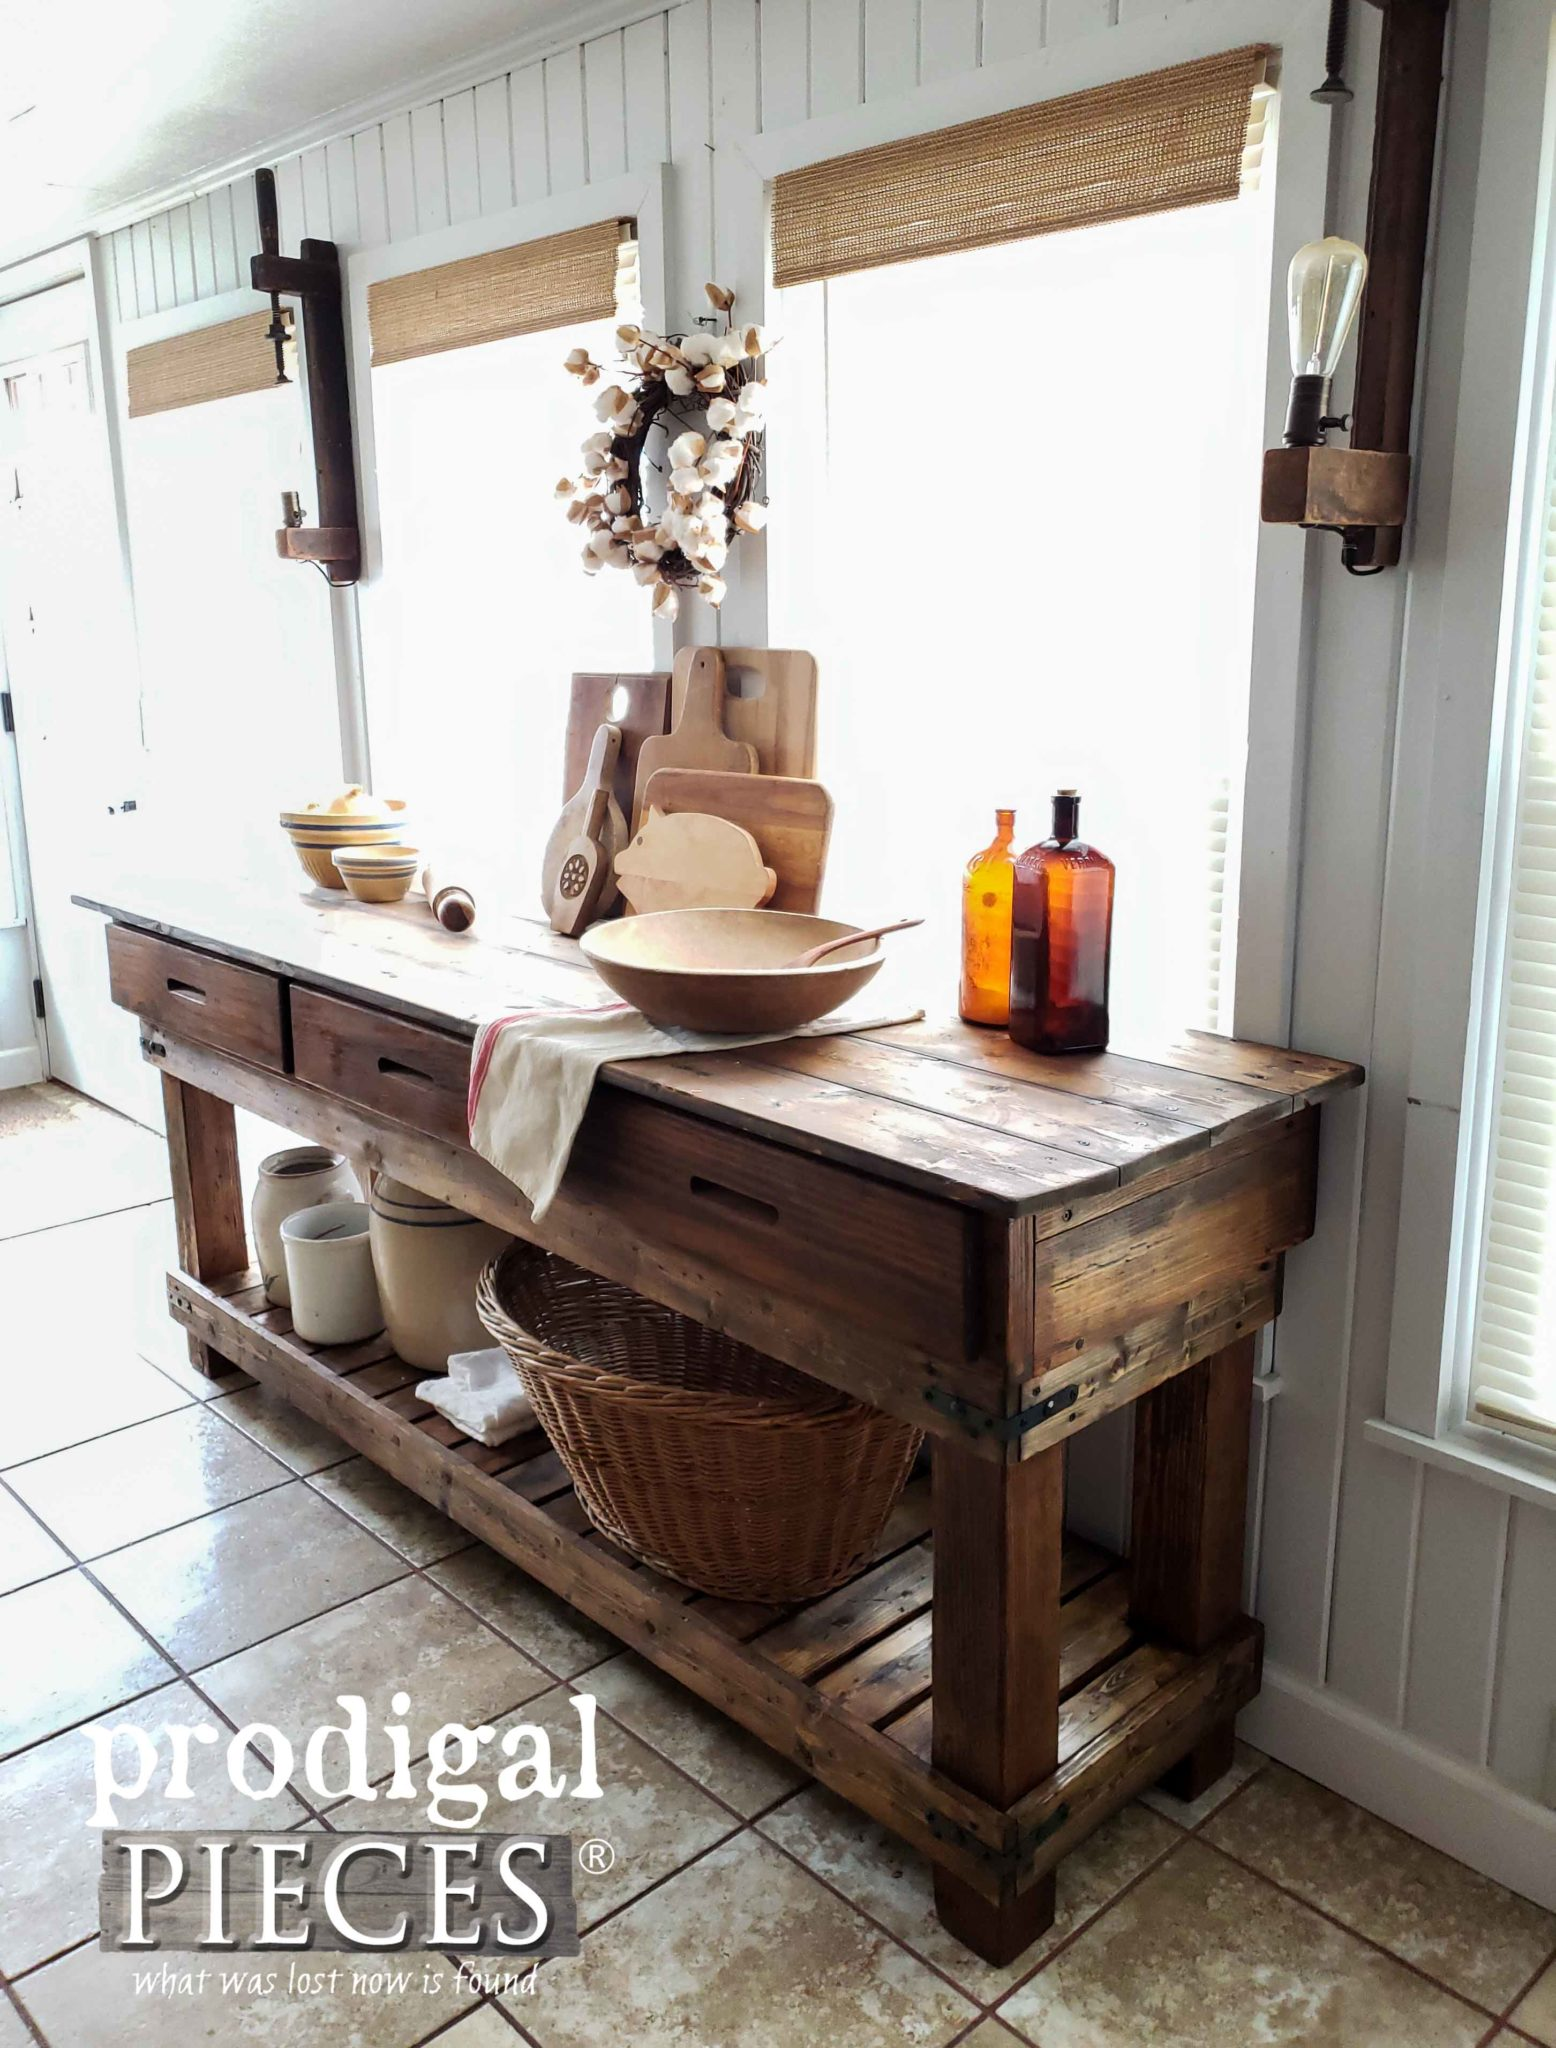 Rustic DIY Farmhouse Workbench Console by Larissa of Prodigal Pieces | prodigalpieces.com